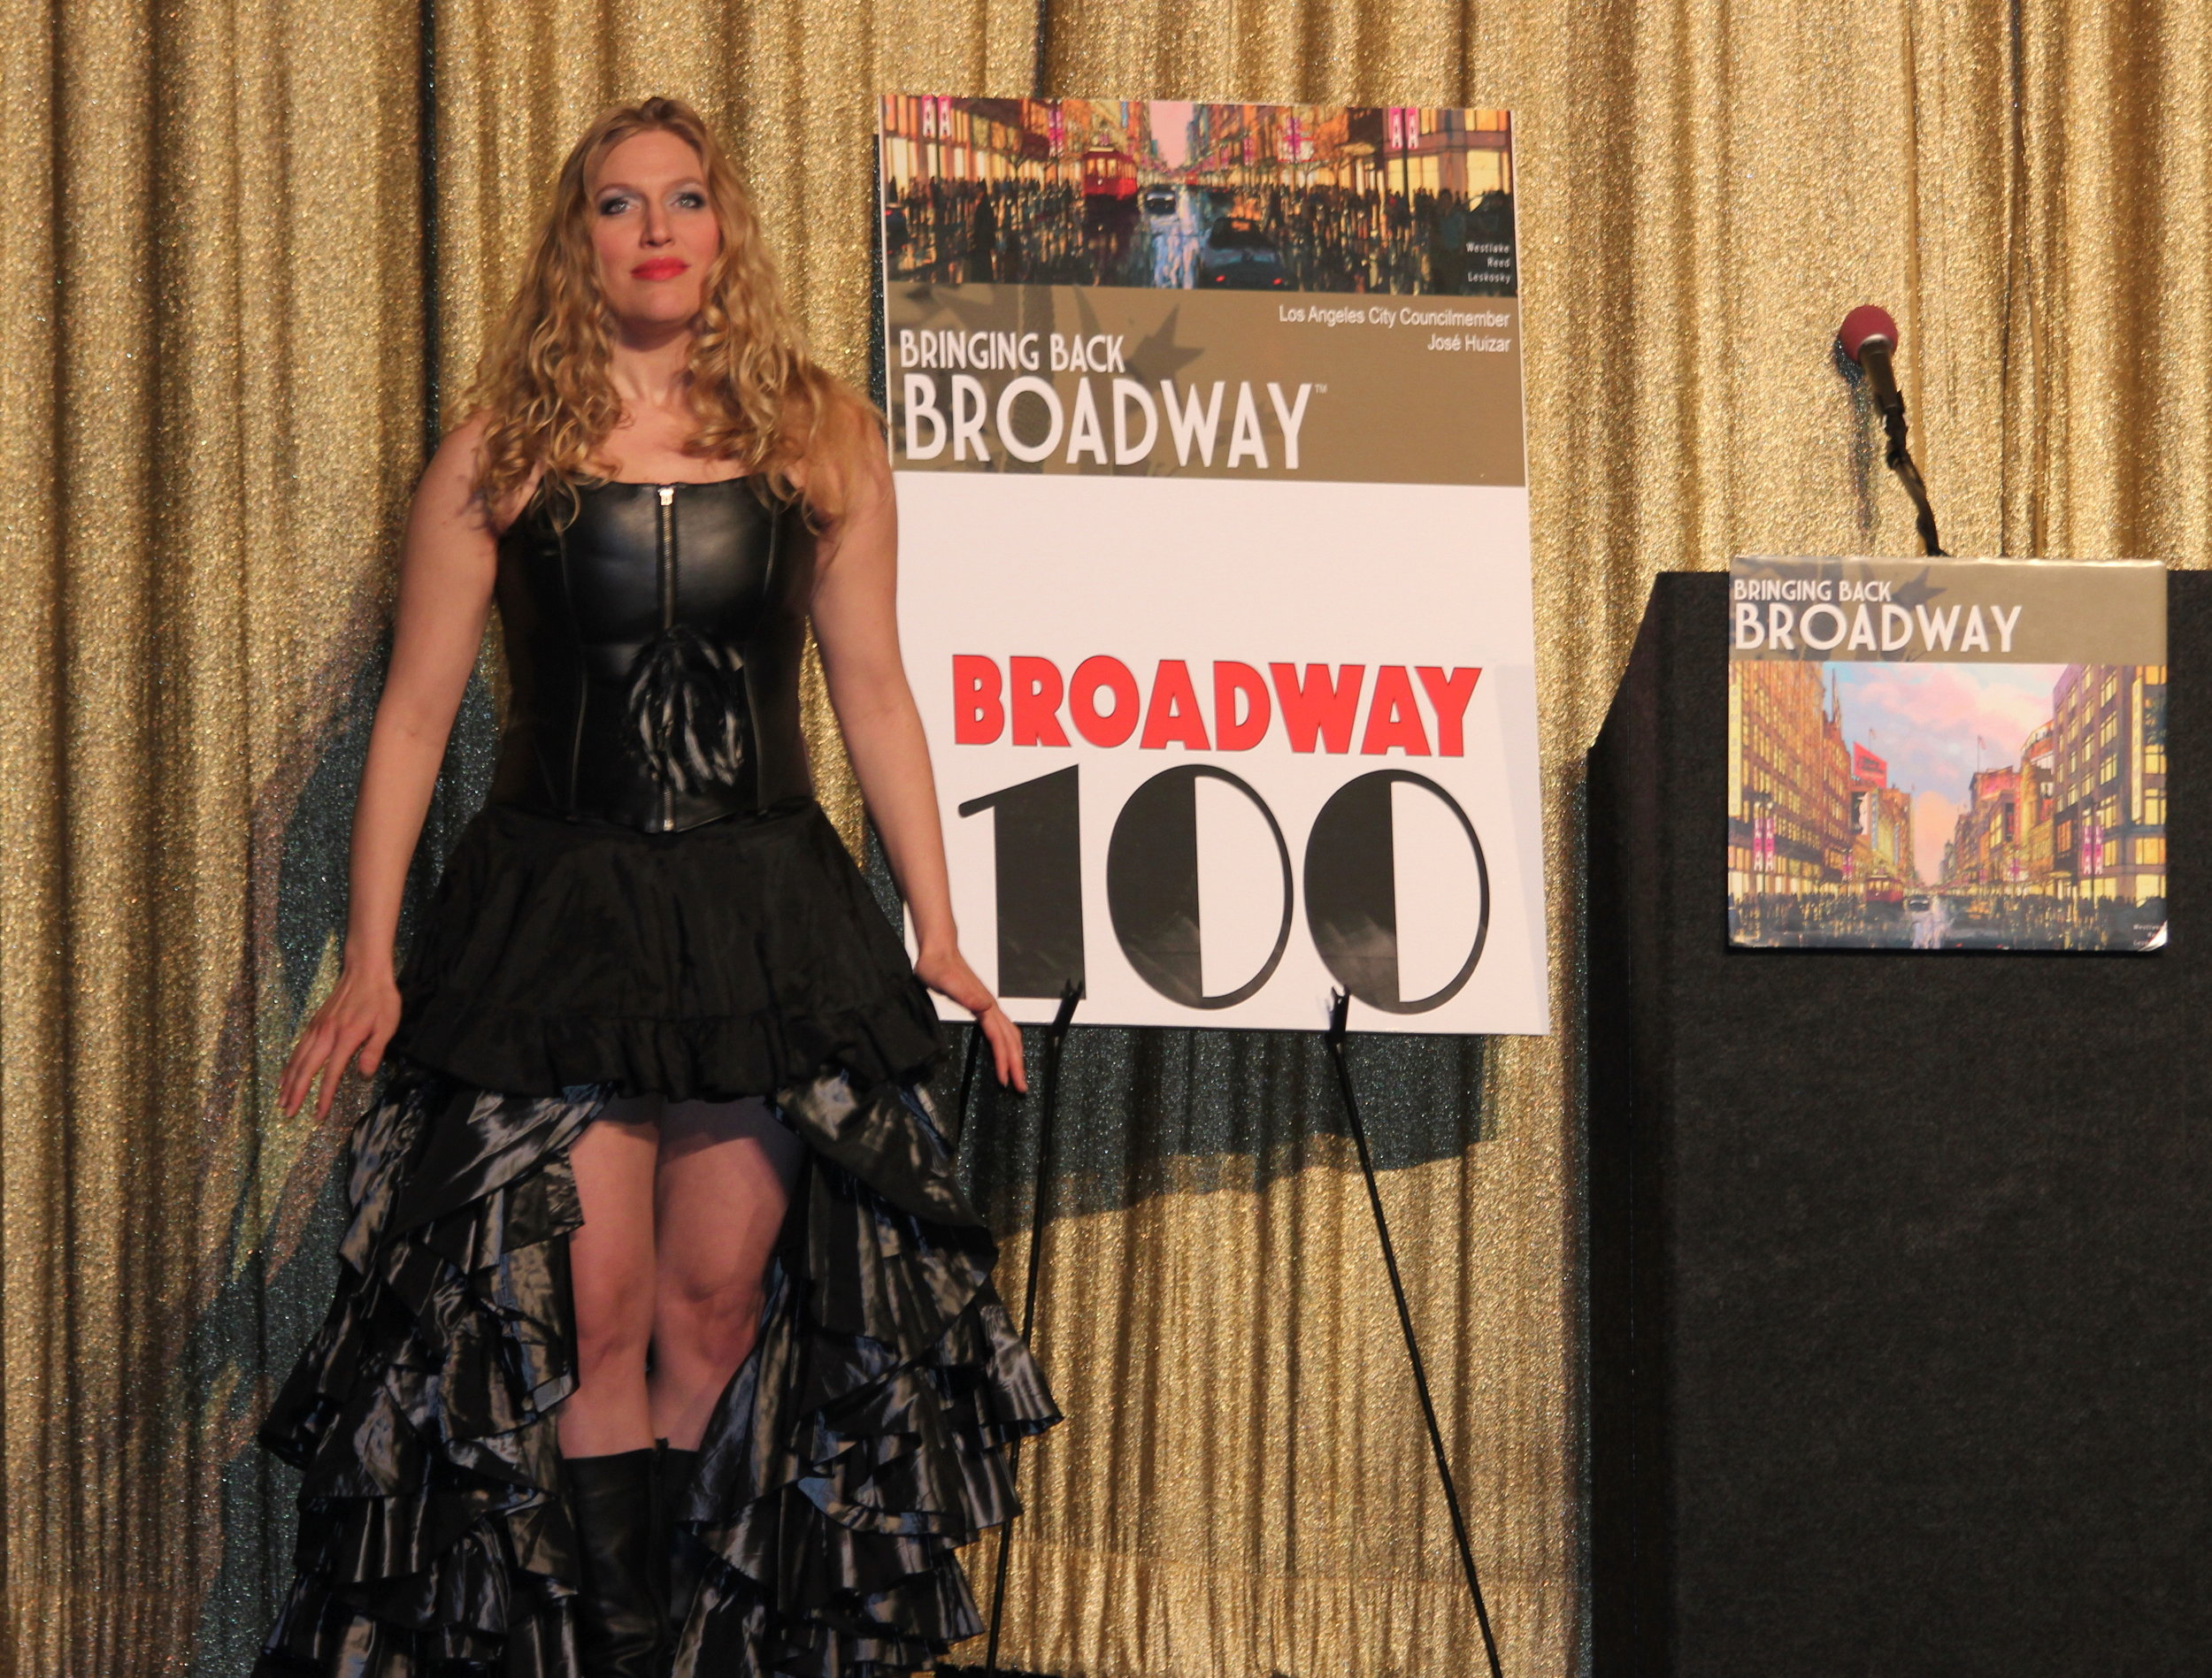 performance-bringing-back-broadway-dtla-theatrefication-broadway-100-bbb_5527284412_o.jpg